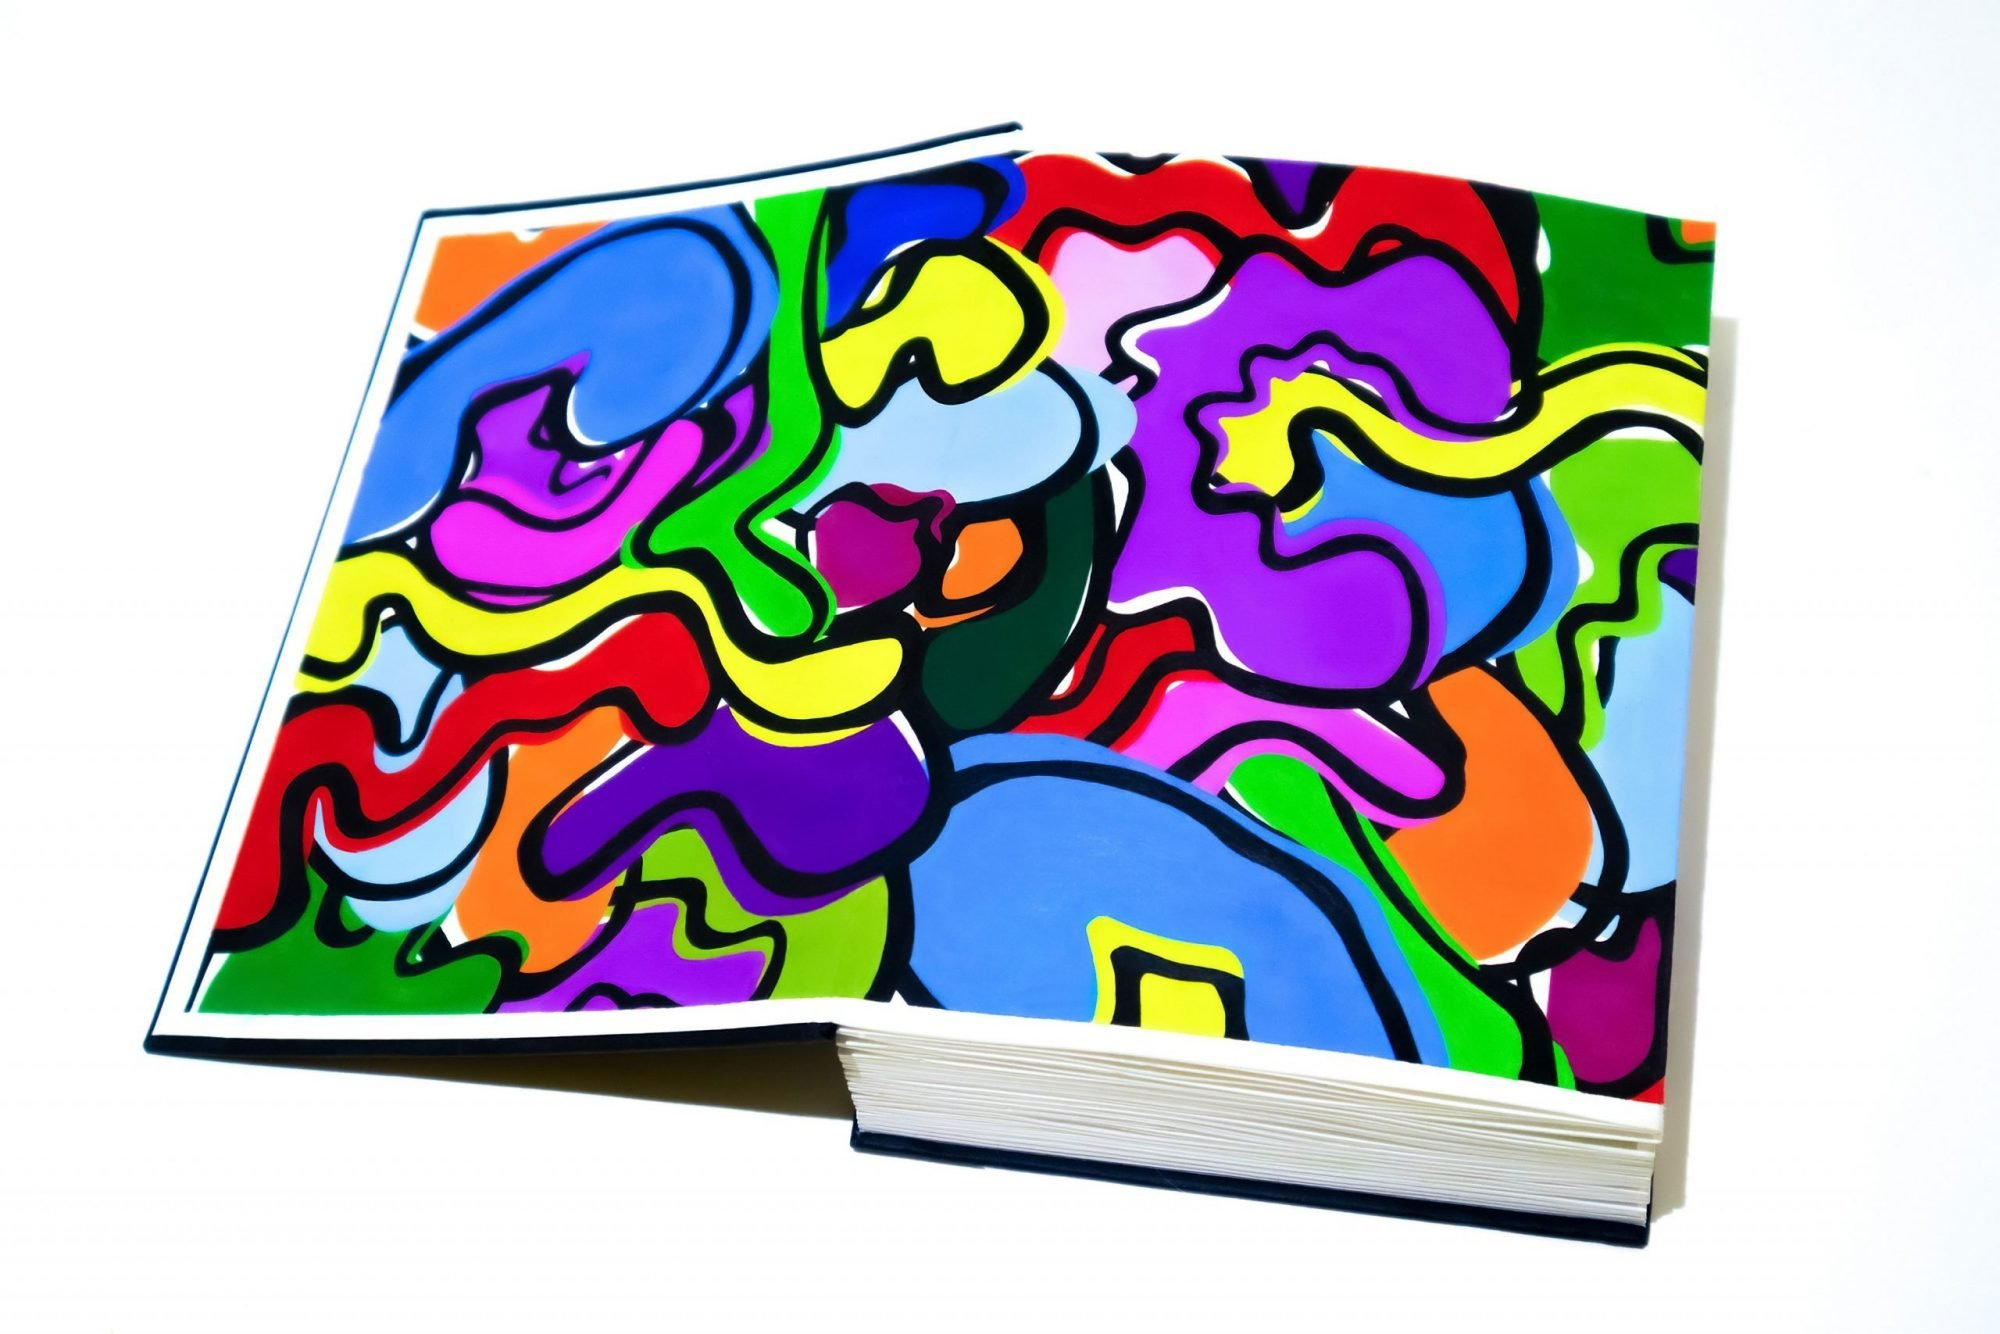 A thick spined book with a black cover is laid open on a white surface. The inside cover and front page is covered in brightly coloured organic shapes and outlined in black.